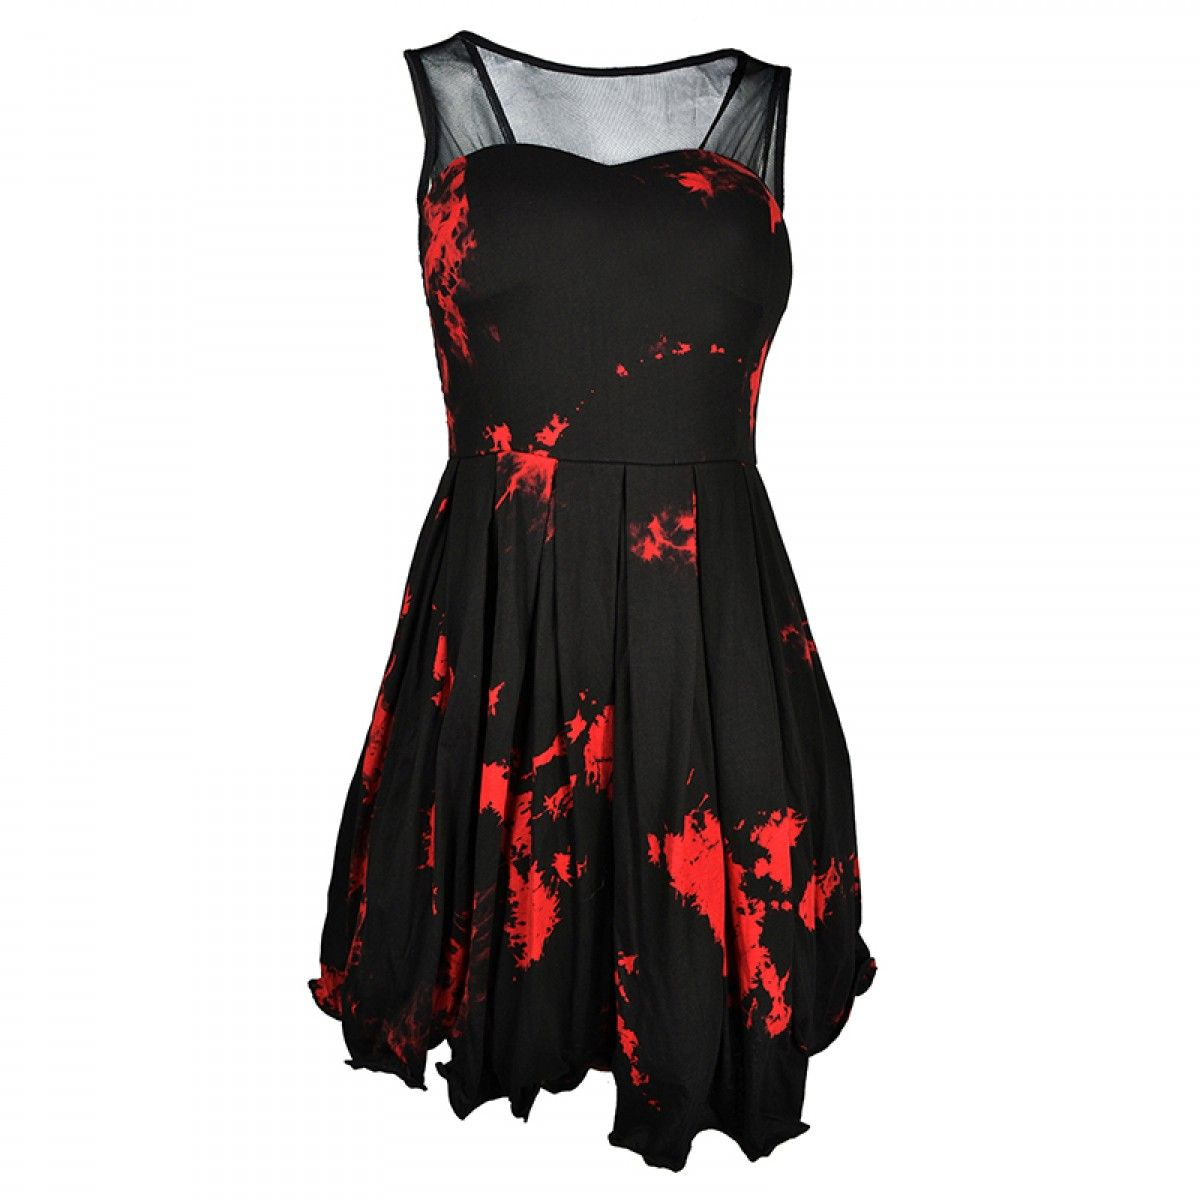 Vera Dress Black/Red | gothicly clothing | Pinterest | Gothic ...